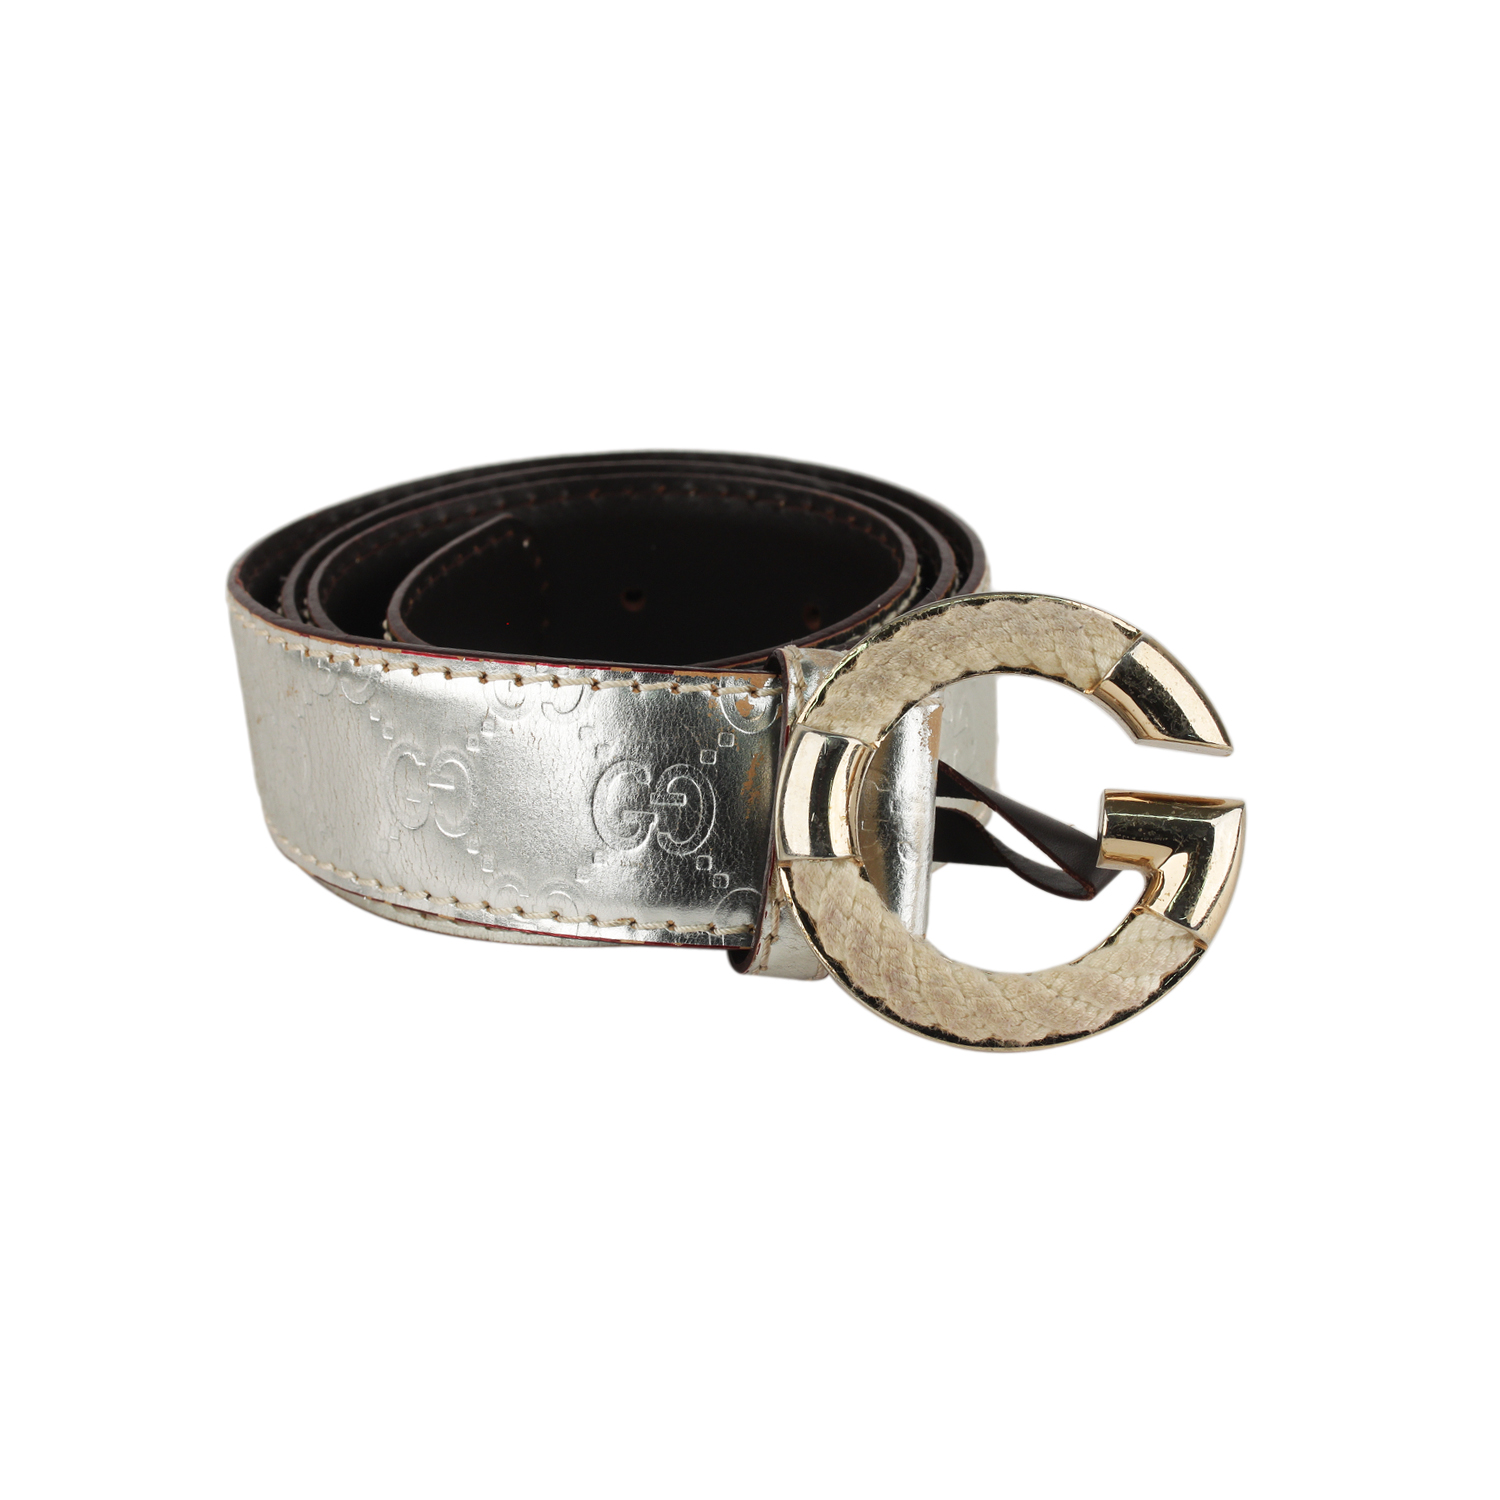 db7051eee Gucci belt in silver-tone Guccissima lleather. G rope logo buckle. 1.5  inches - 3,8cm wide. Size: 85/34. 5 Holes adjustament.